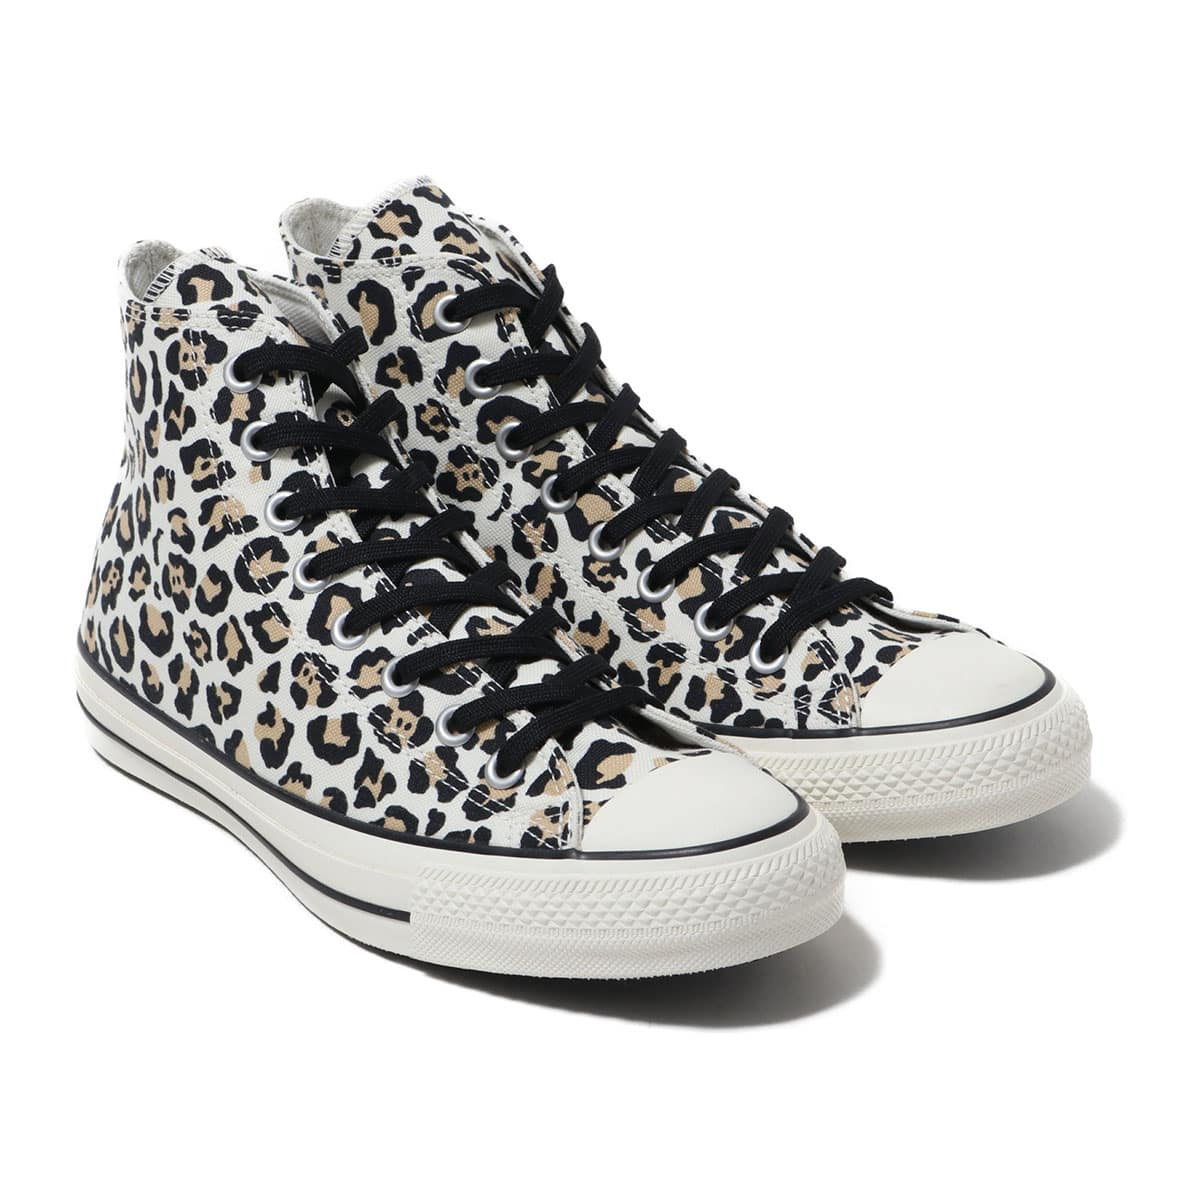 CONVERSE ALL STAR 100 ANIMALS HI LEOPARD 20SS-I_photo_large